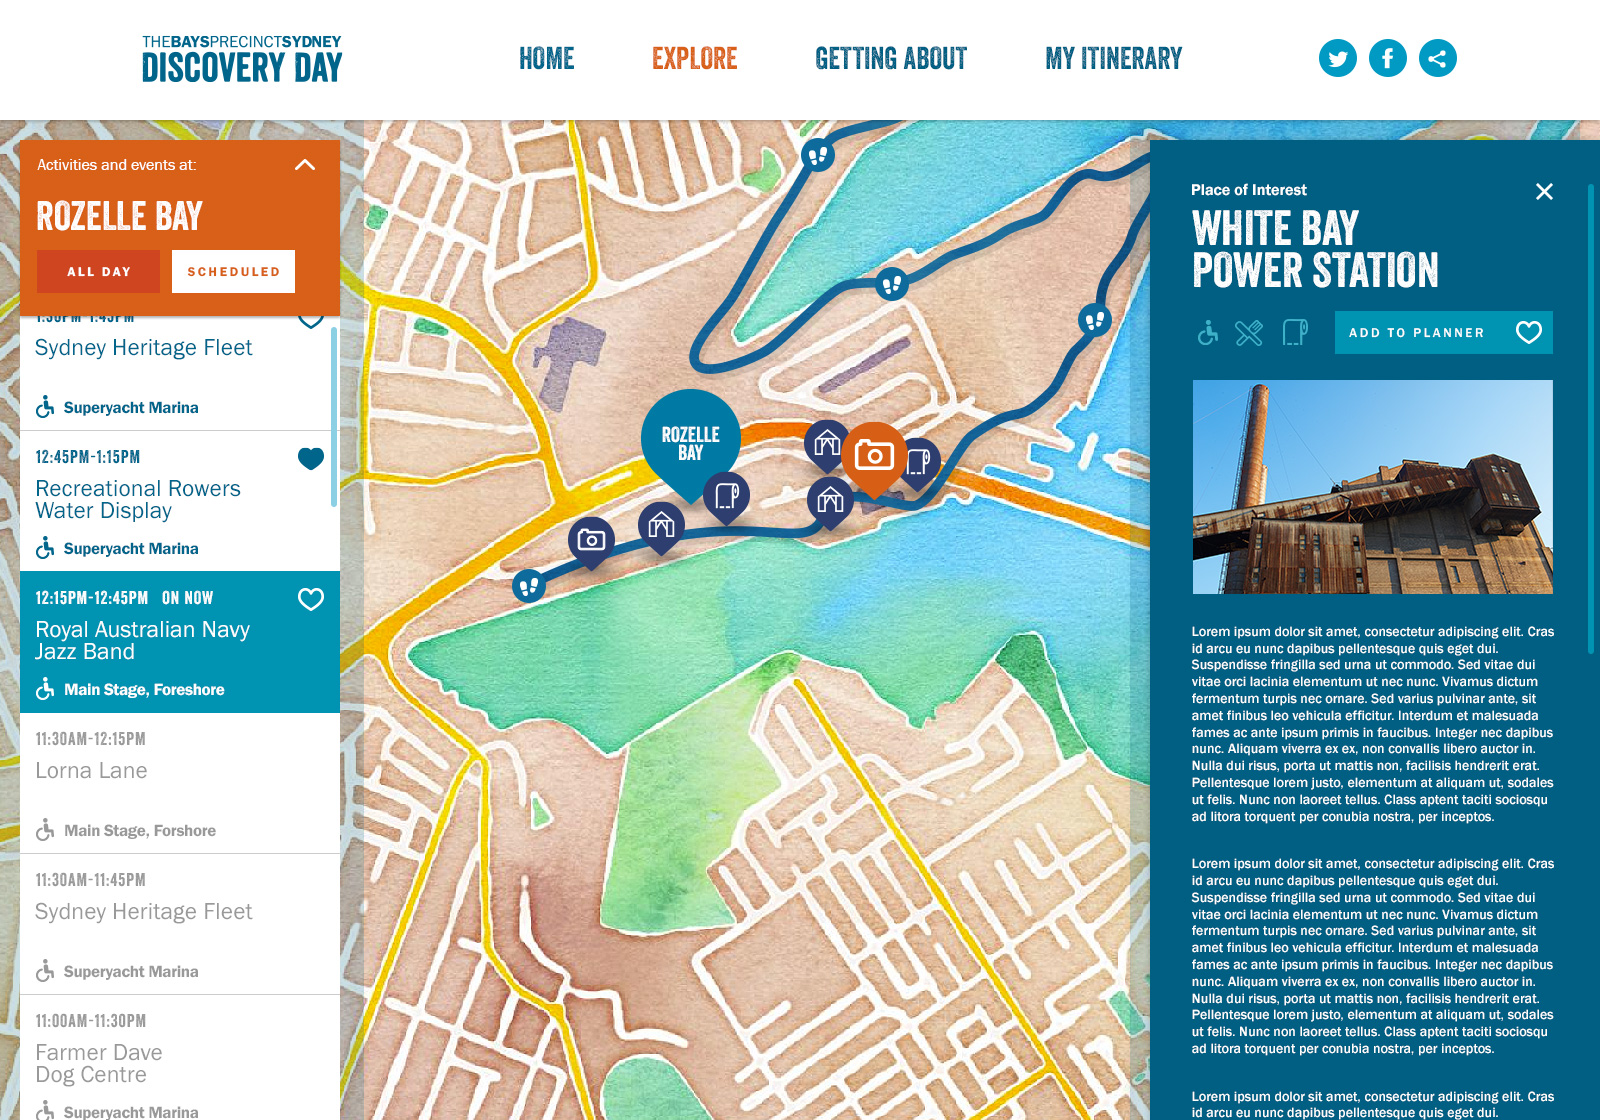 The Bays Discovery Days website provided a guide for visitors on the day.